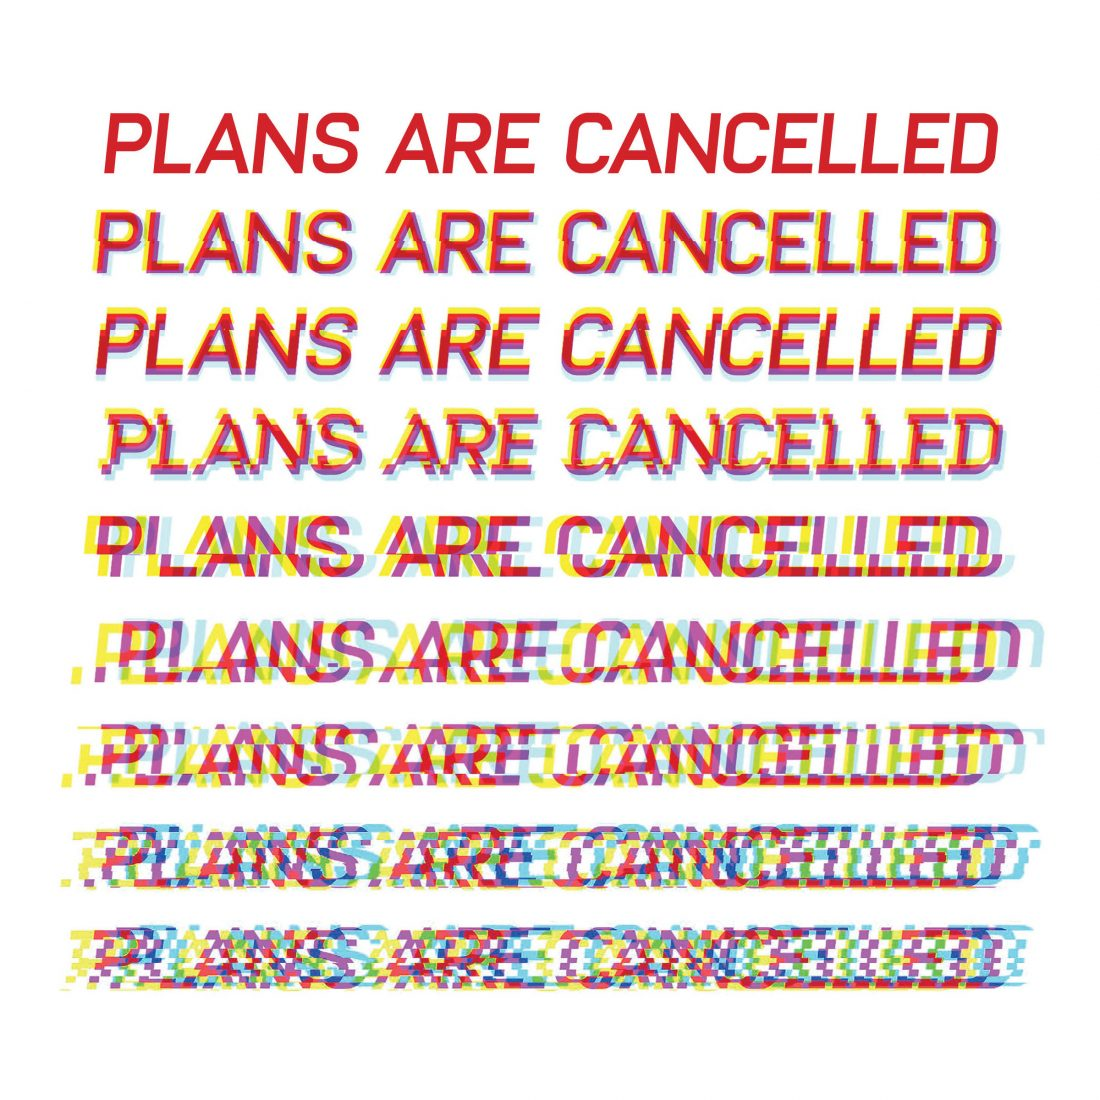 Plans Are Cancelled poster art.